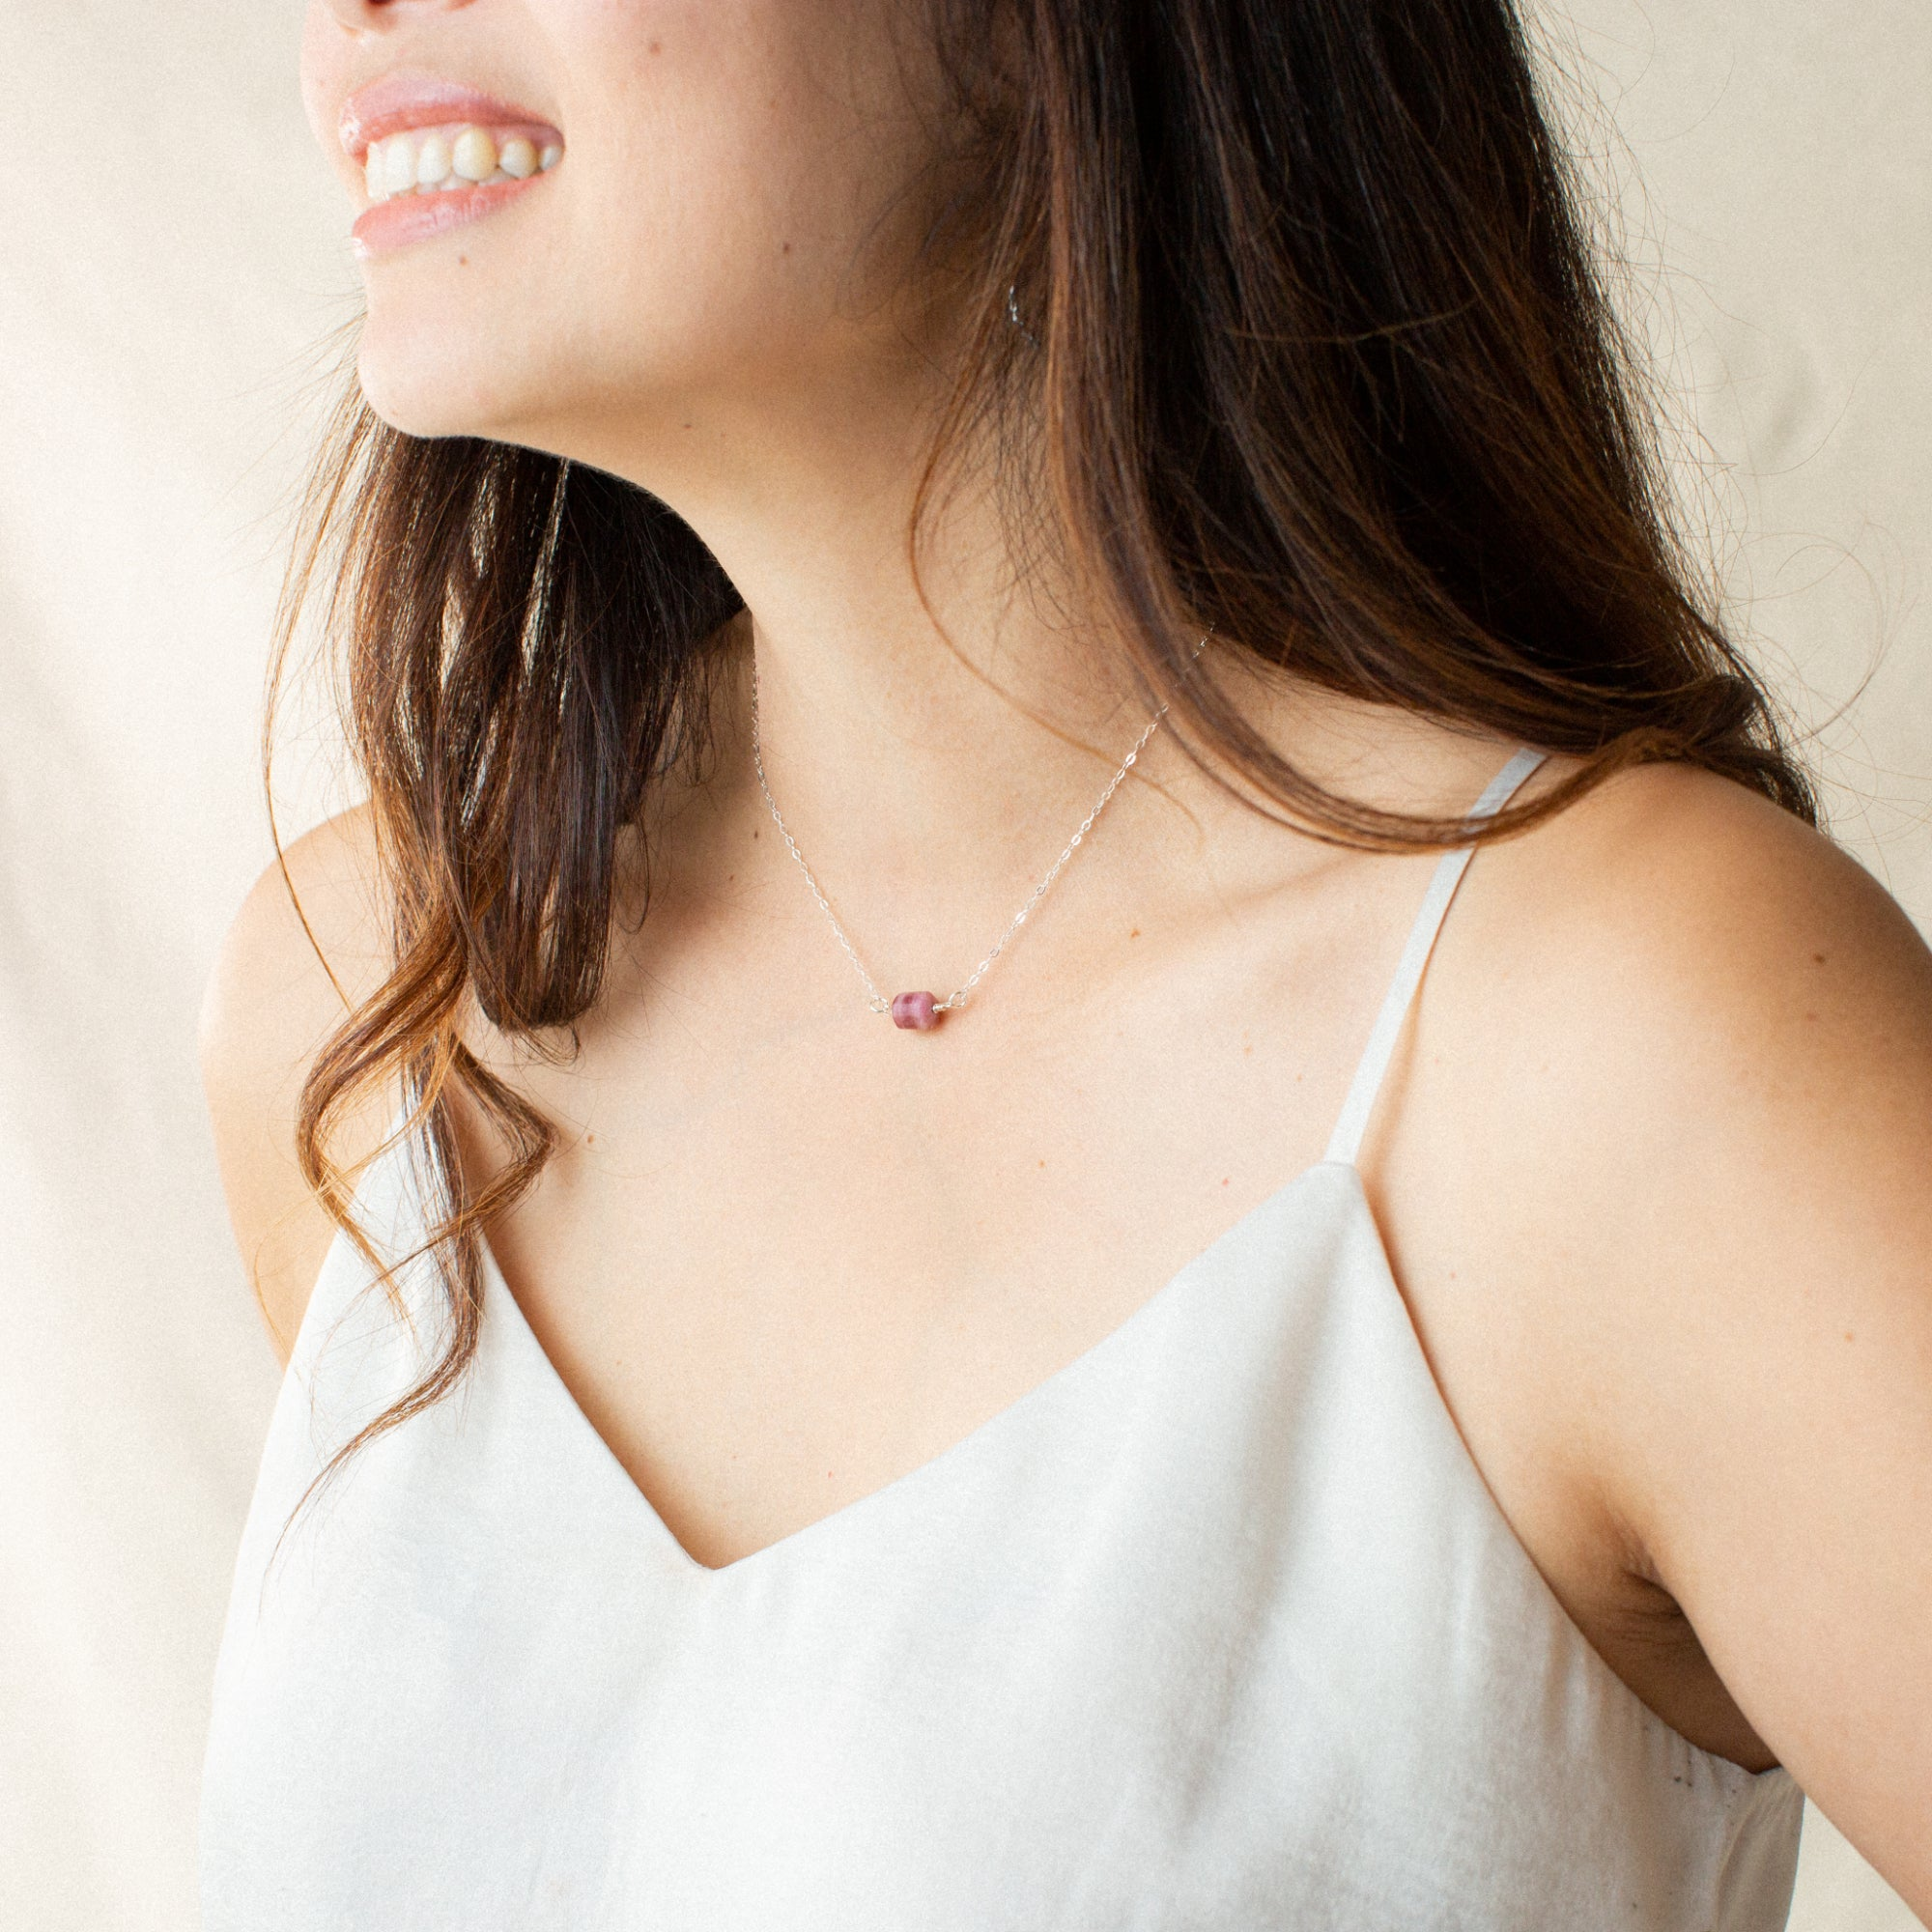 Woman in White Shirt Smiling and Wearing Rubellite Tourmaline and Silver Necklace 'You Rock' Model Photo by Asha Blooms